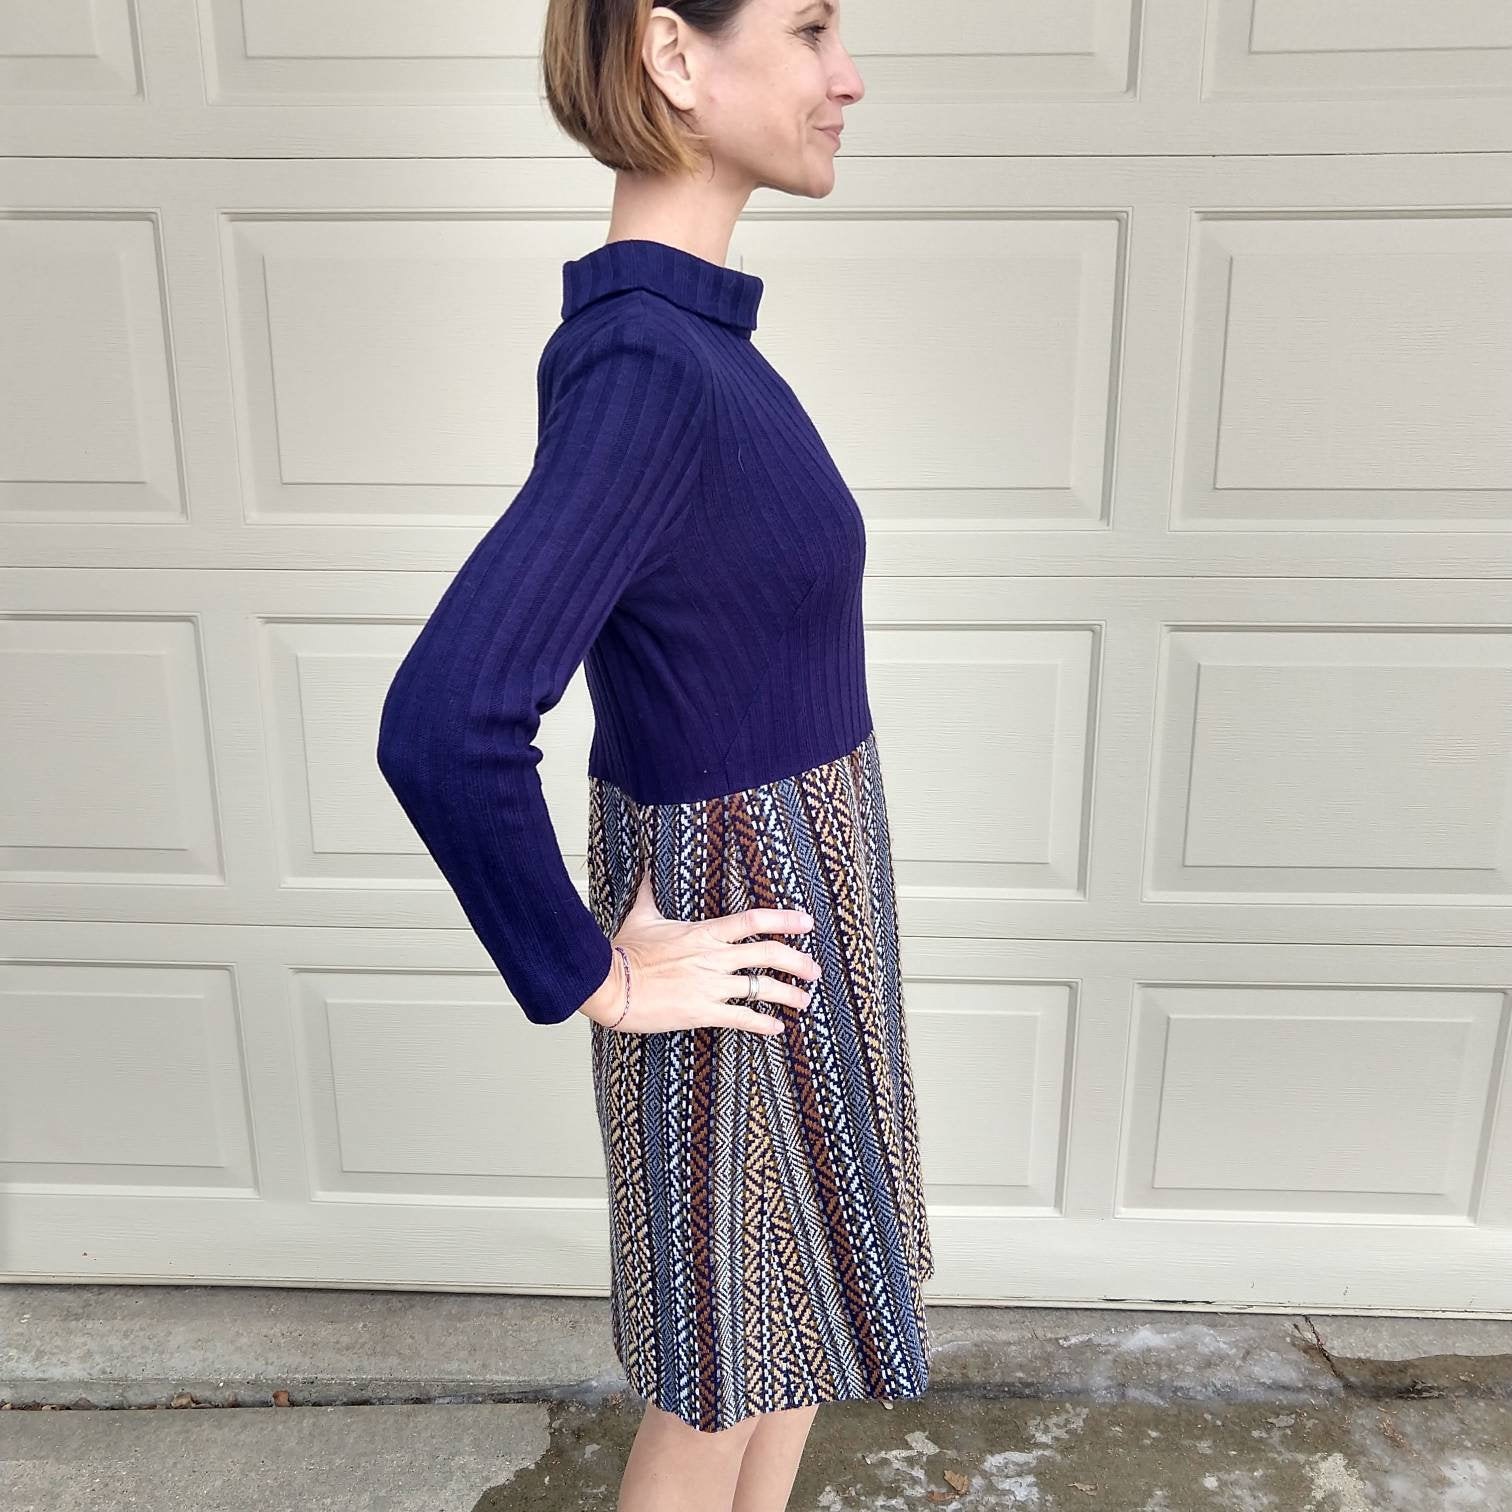 MOD KNIT DRESS sweater 60s 1960s S (A8)